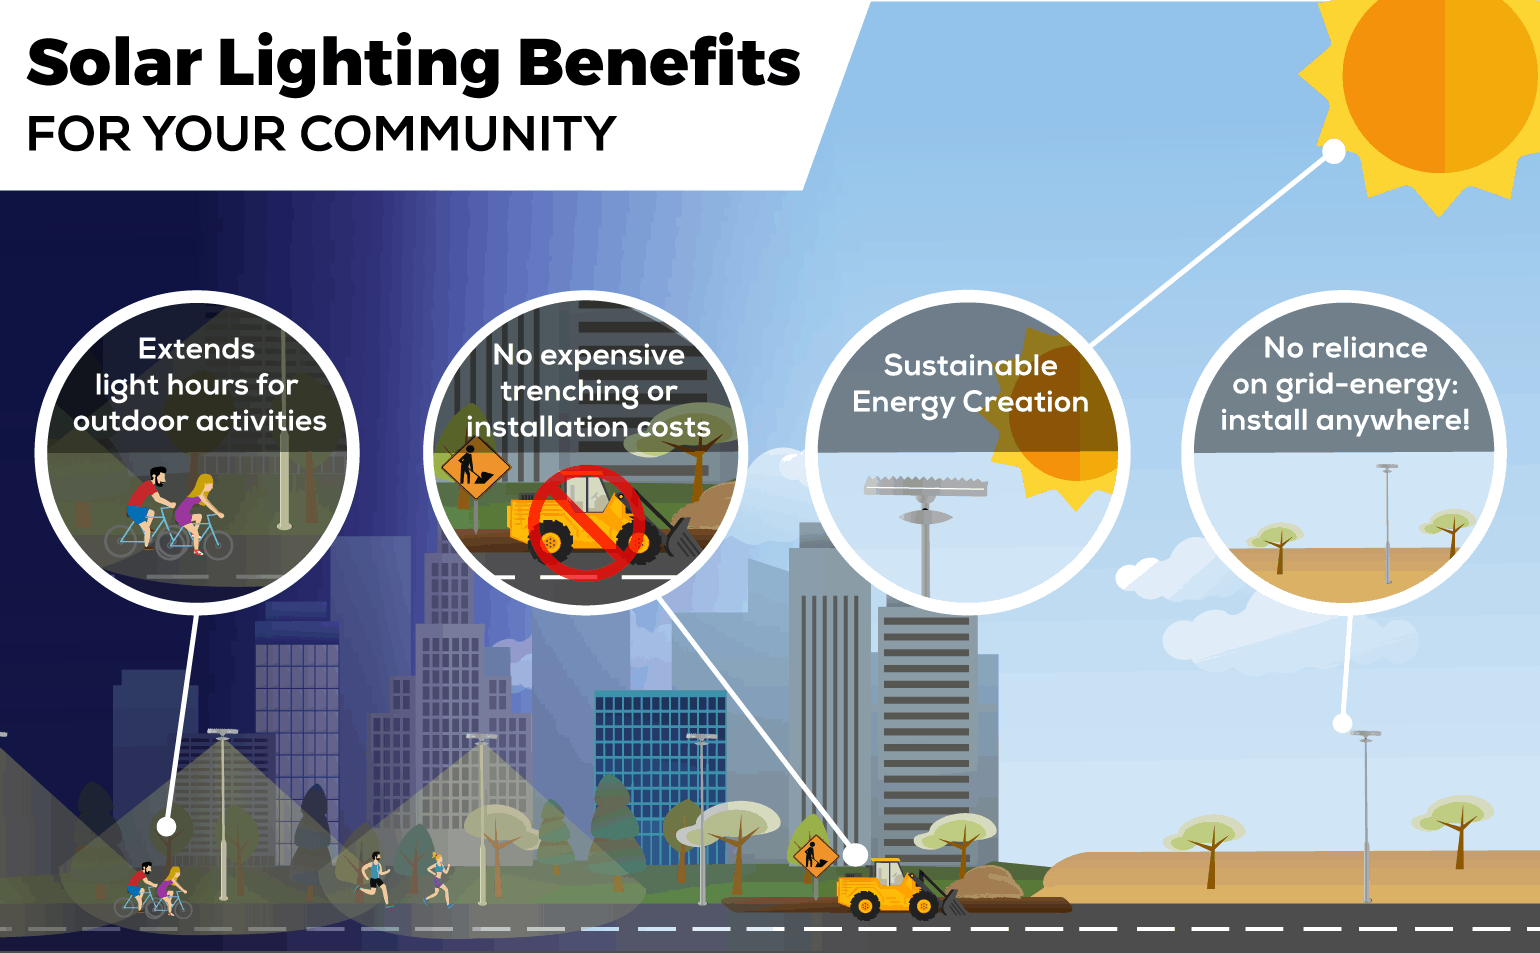 Solar Benefits for Your Community Infographic